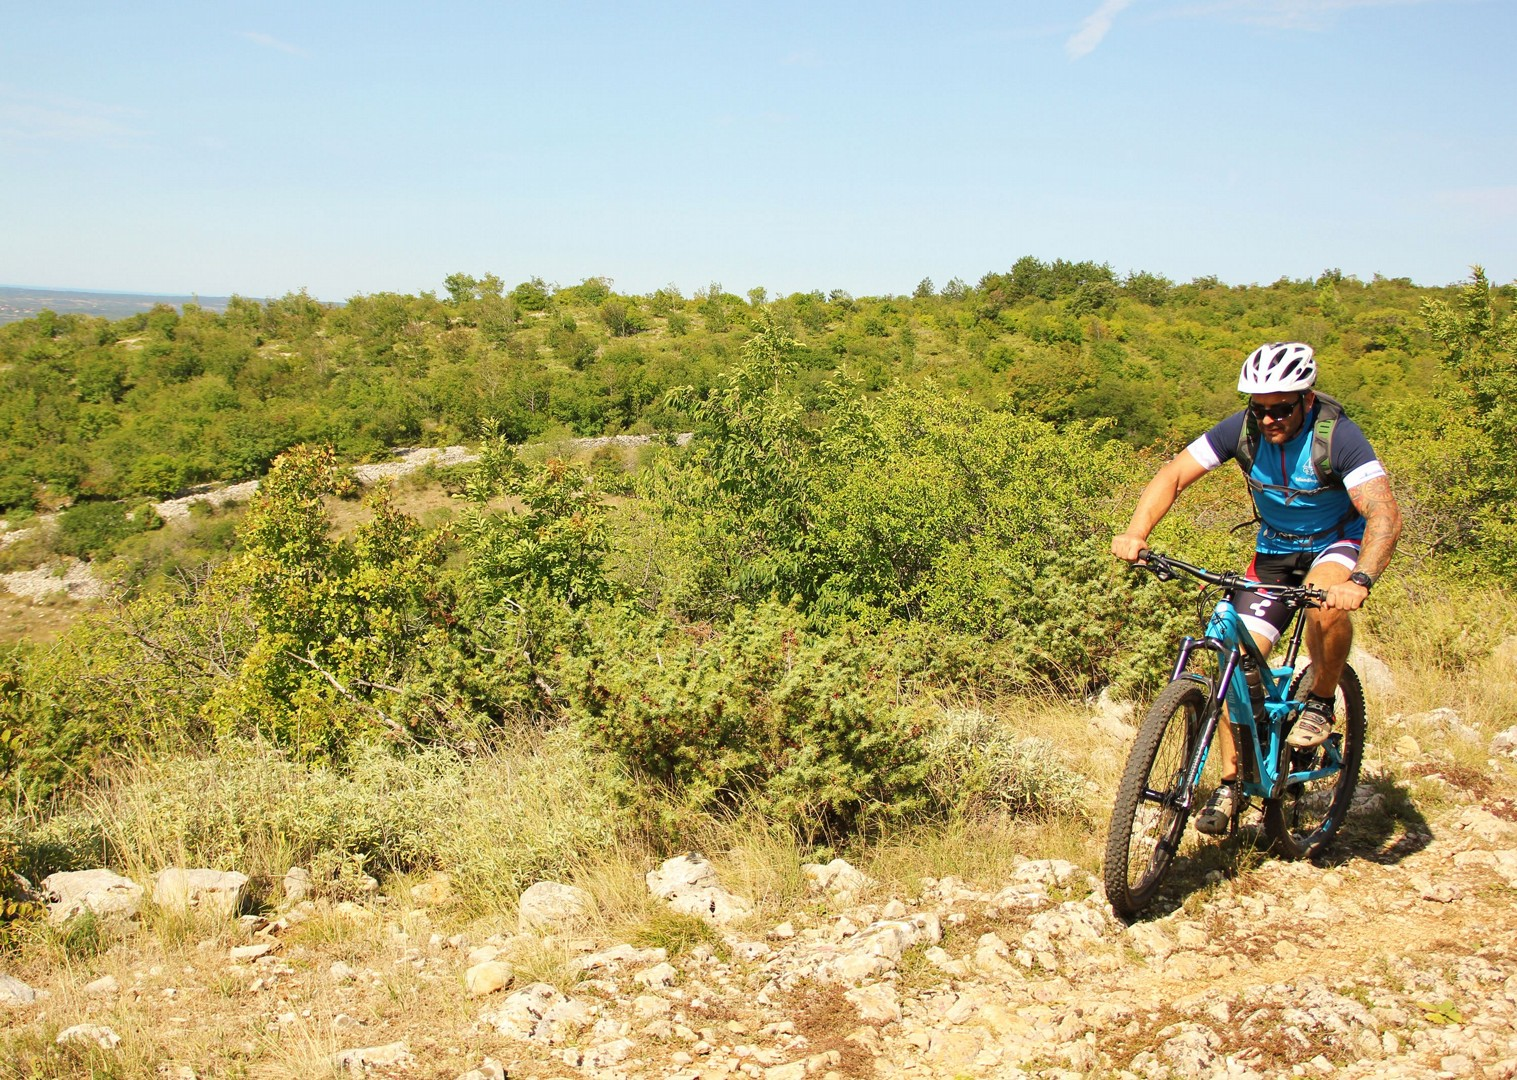 mountain-biking-croatia-magic-land-of-istria.JPG - NEW! Croatia - Terra Magica - Mountain Biking